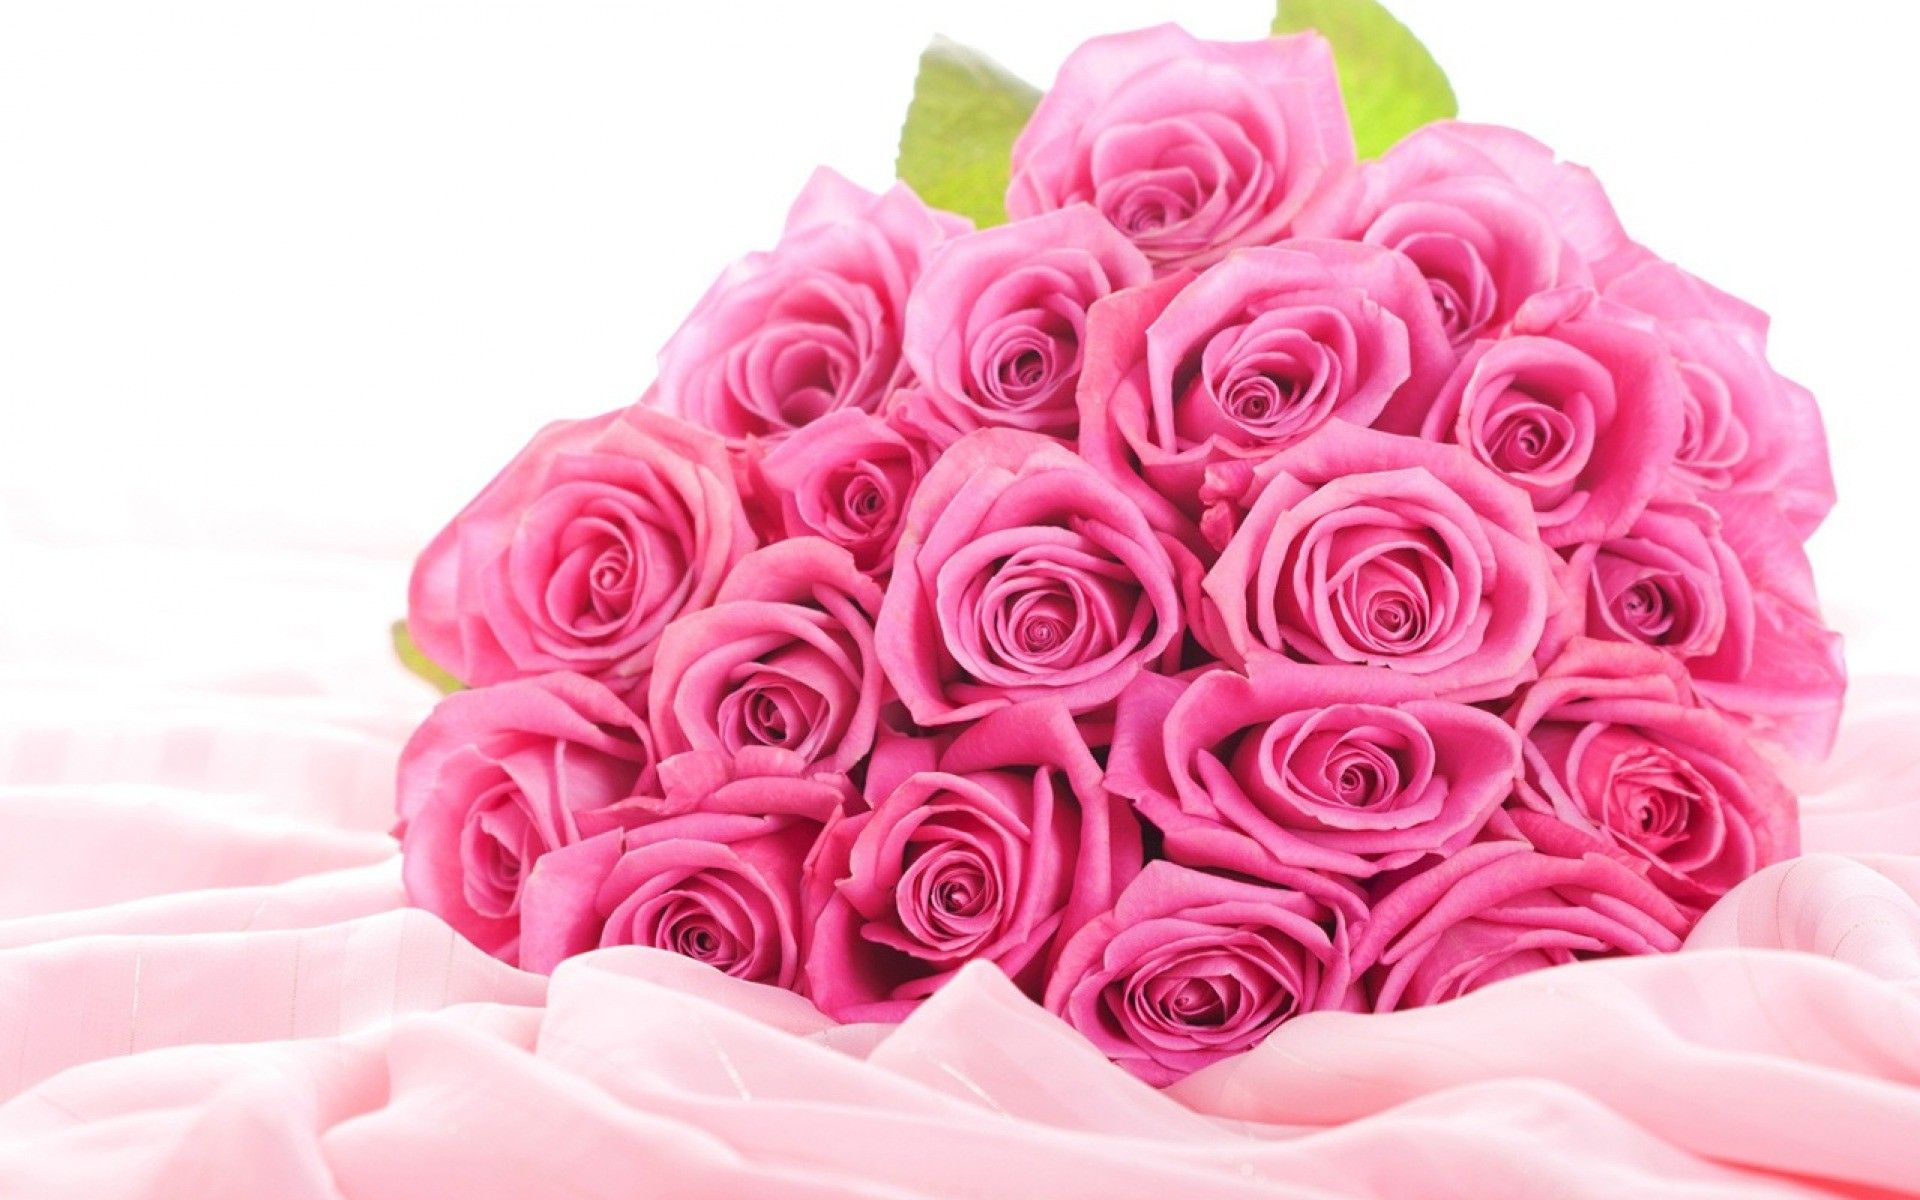 a large bouquet of pink roses on white fabric